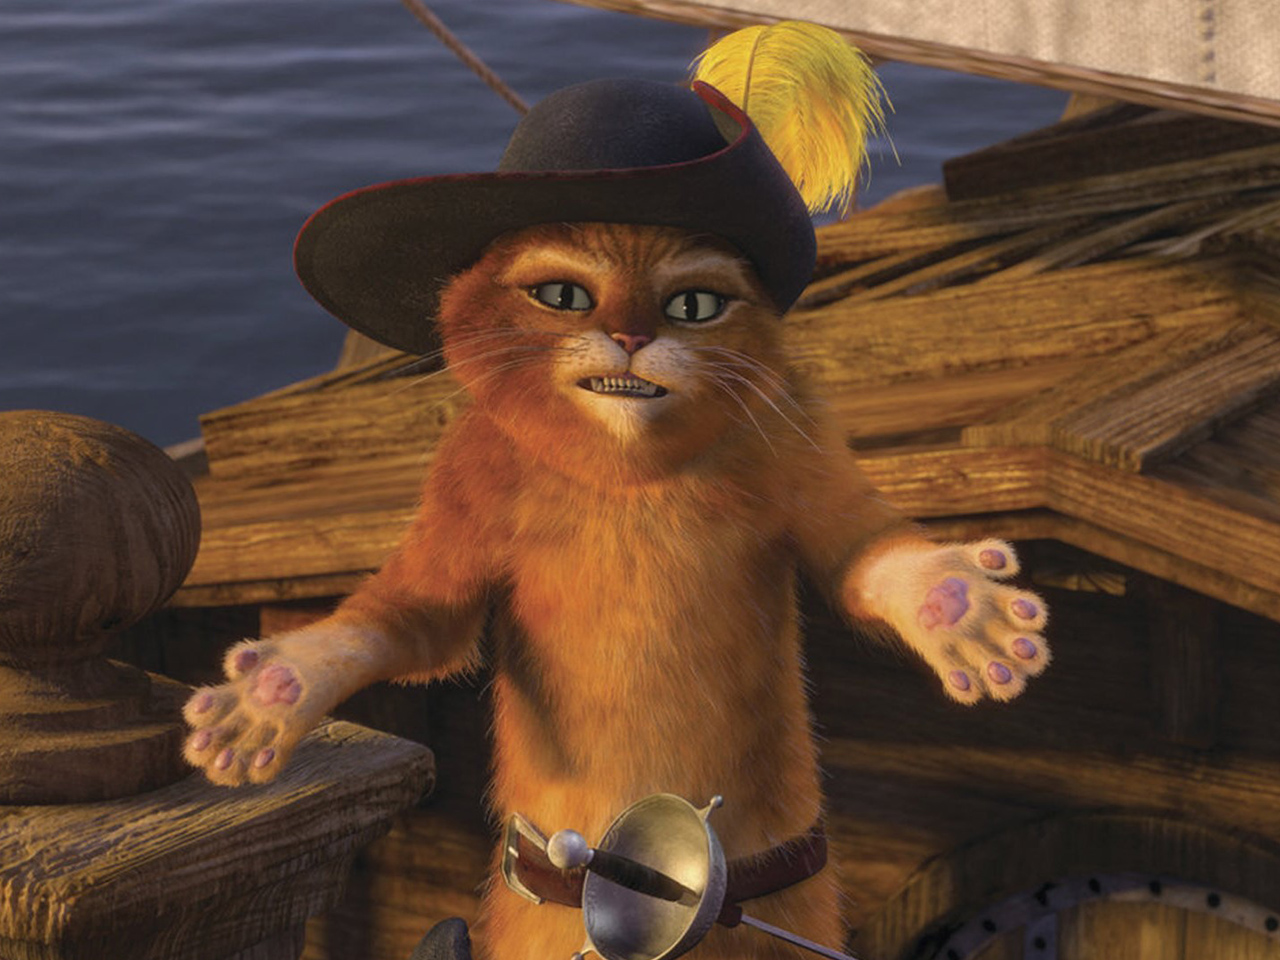 A still from the kids' animated movie Puss in Boots